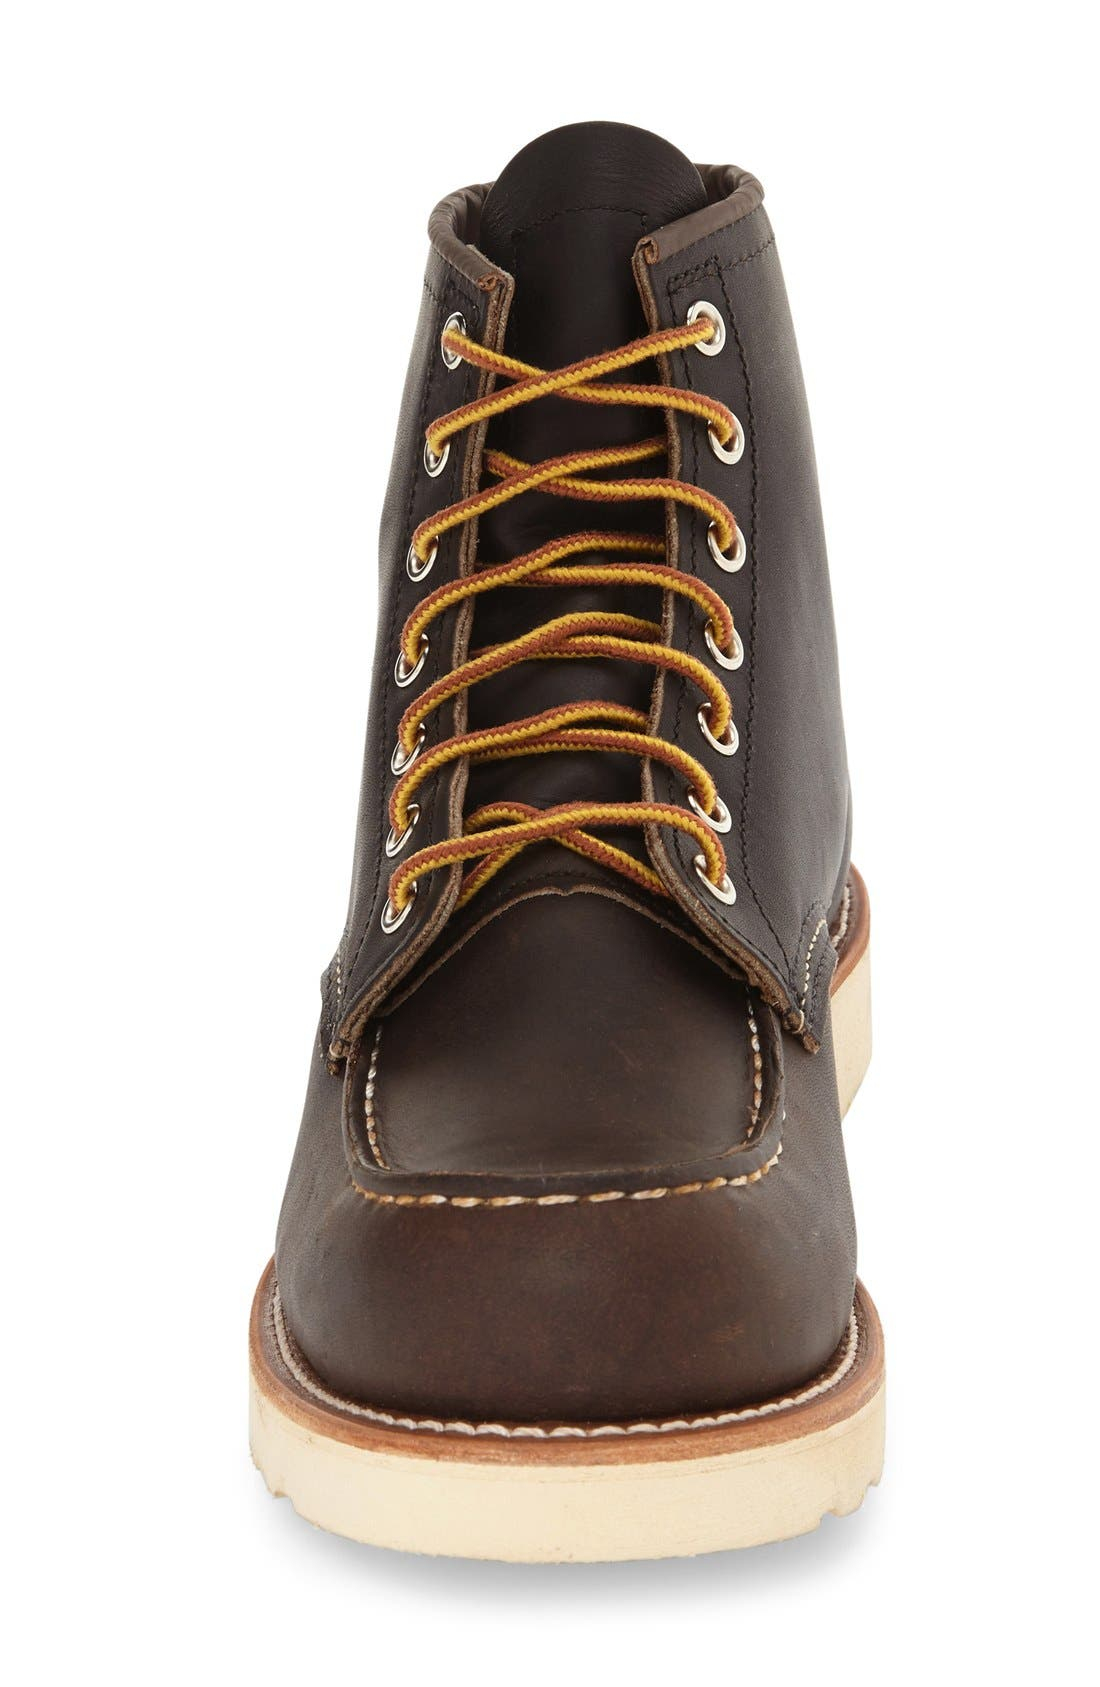 6 Inch Moc Toe Boot,                             Alternate thumbnail 3, color,                             200